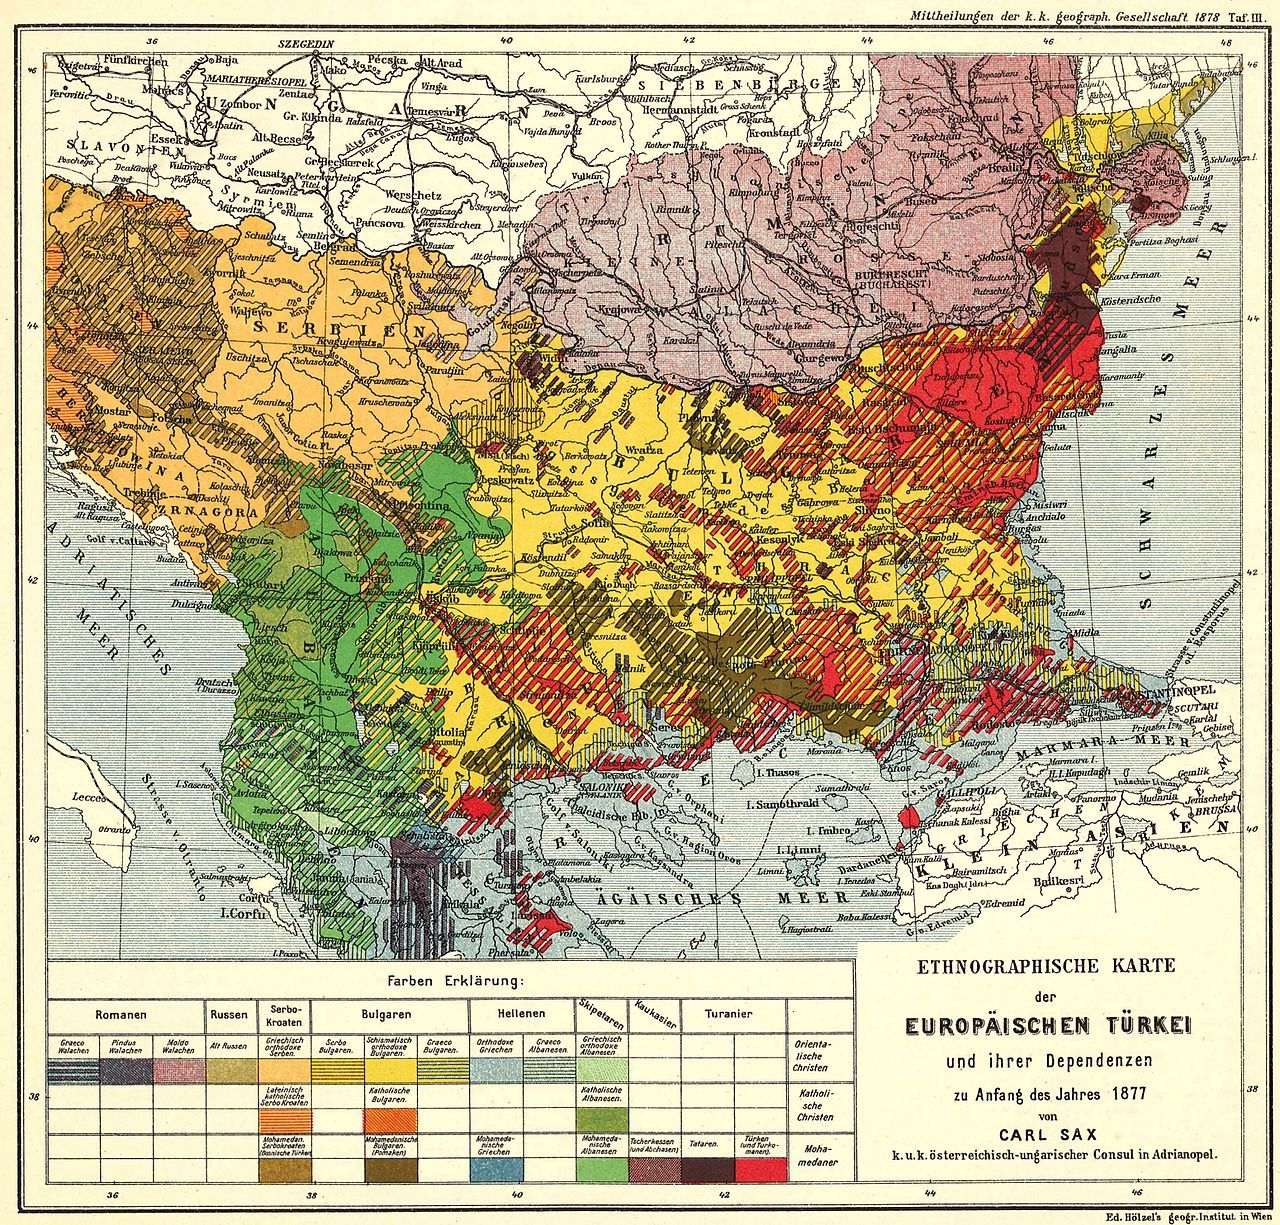 Ethnological Map Of European Turkey And Her Dependencies At The